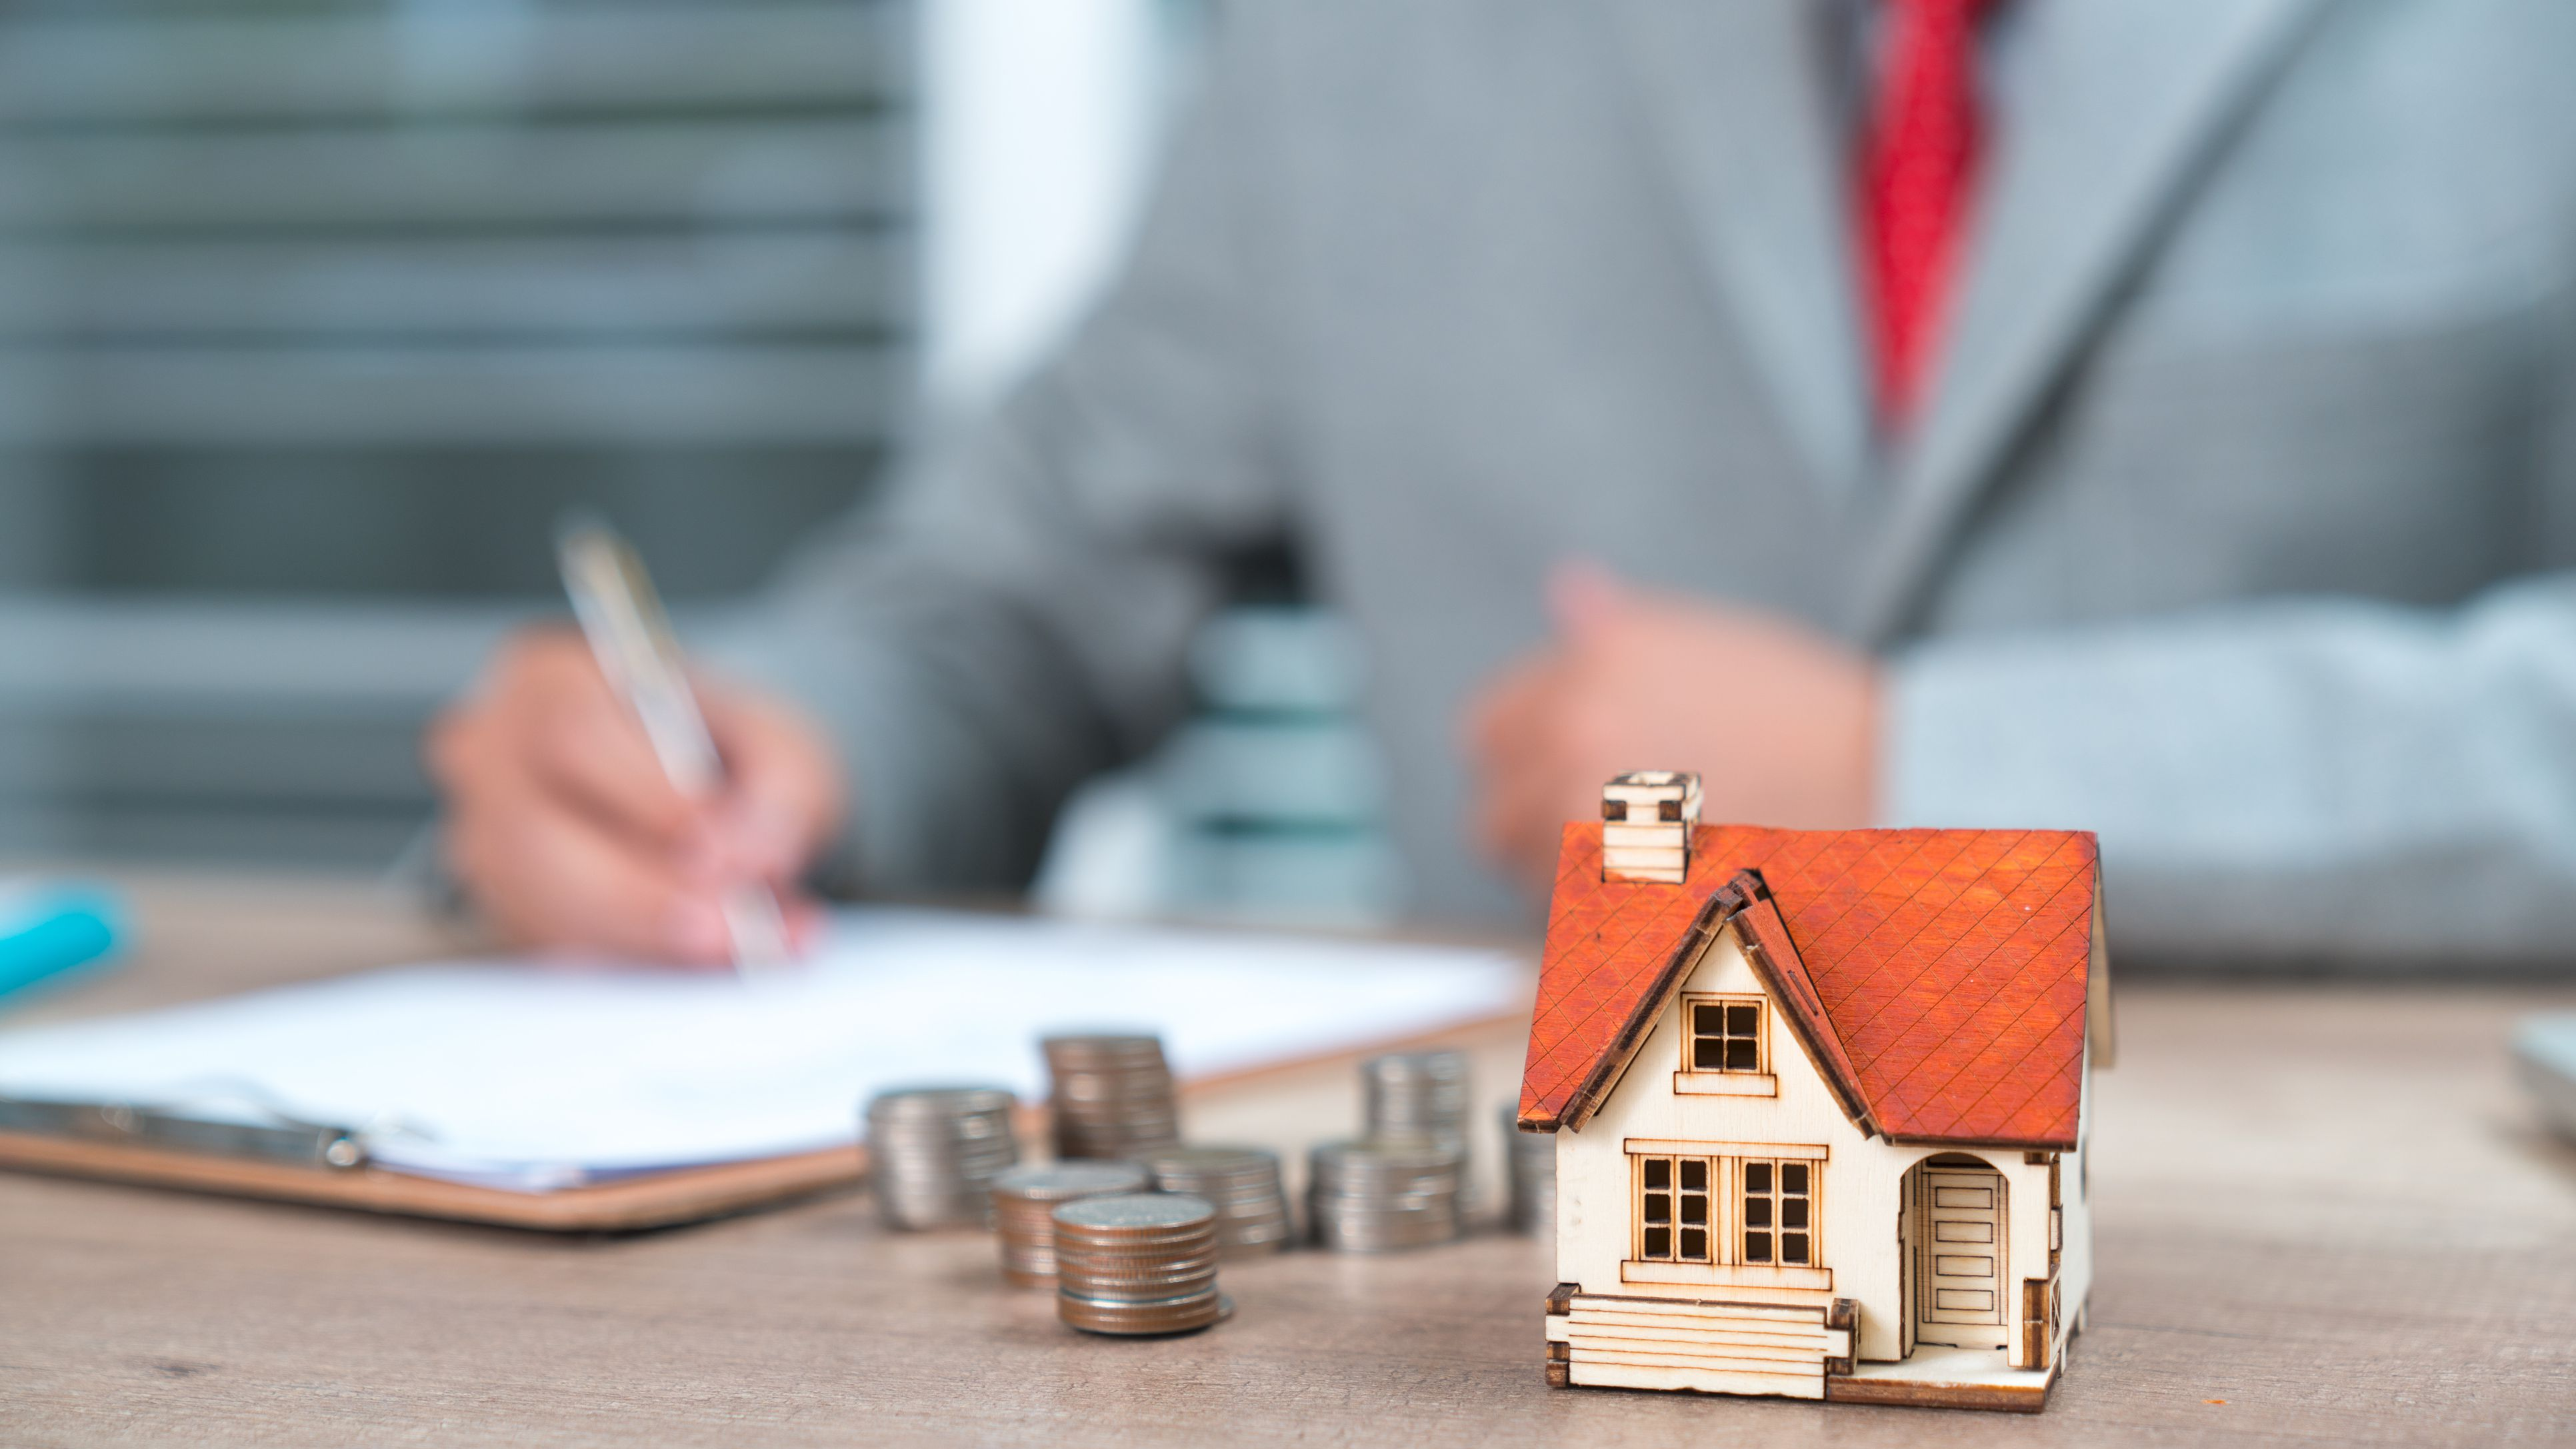 How To Calculate ROI on a Rental Property